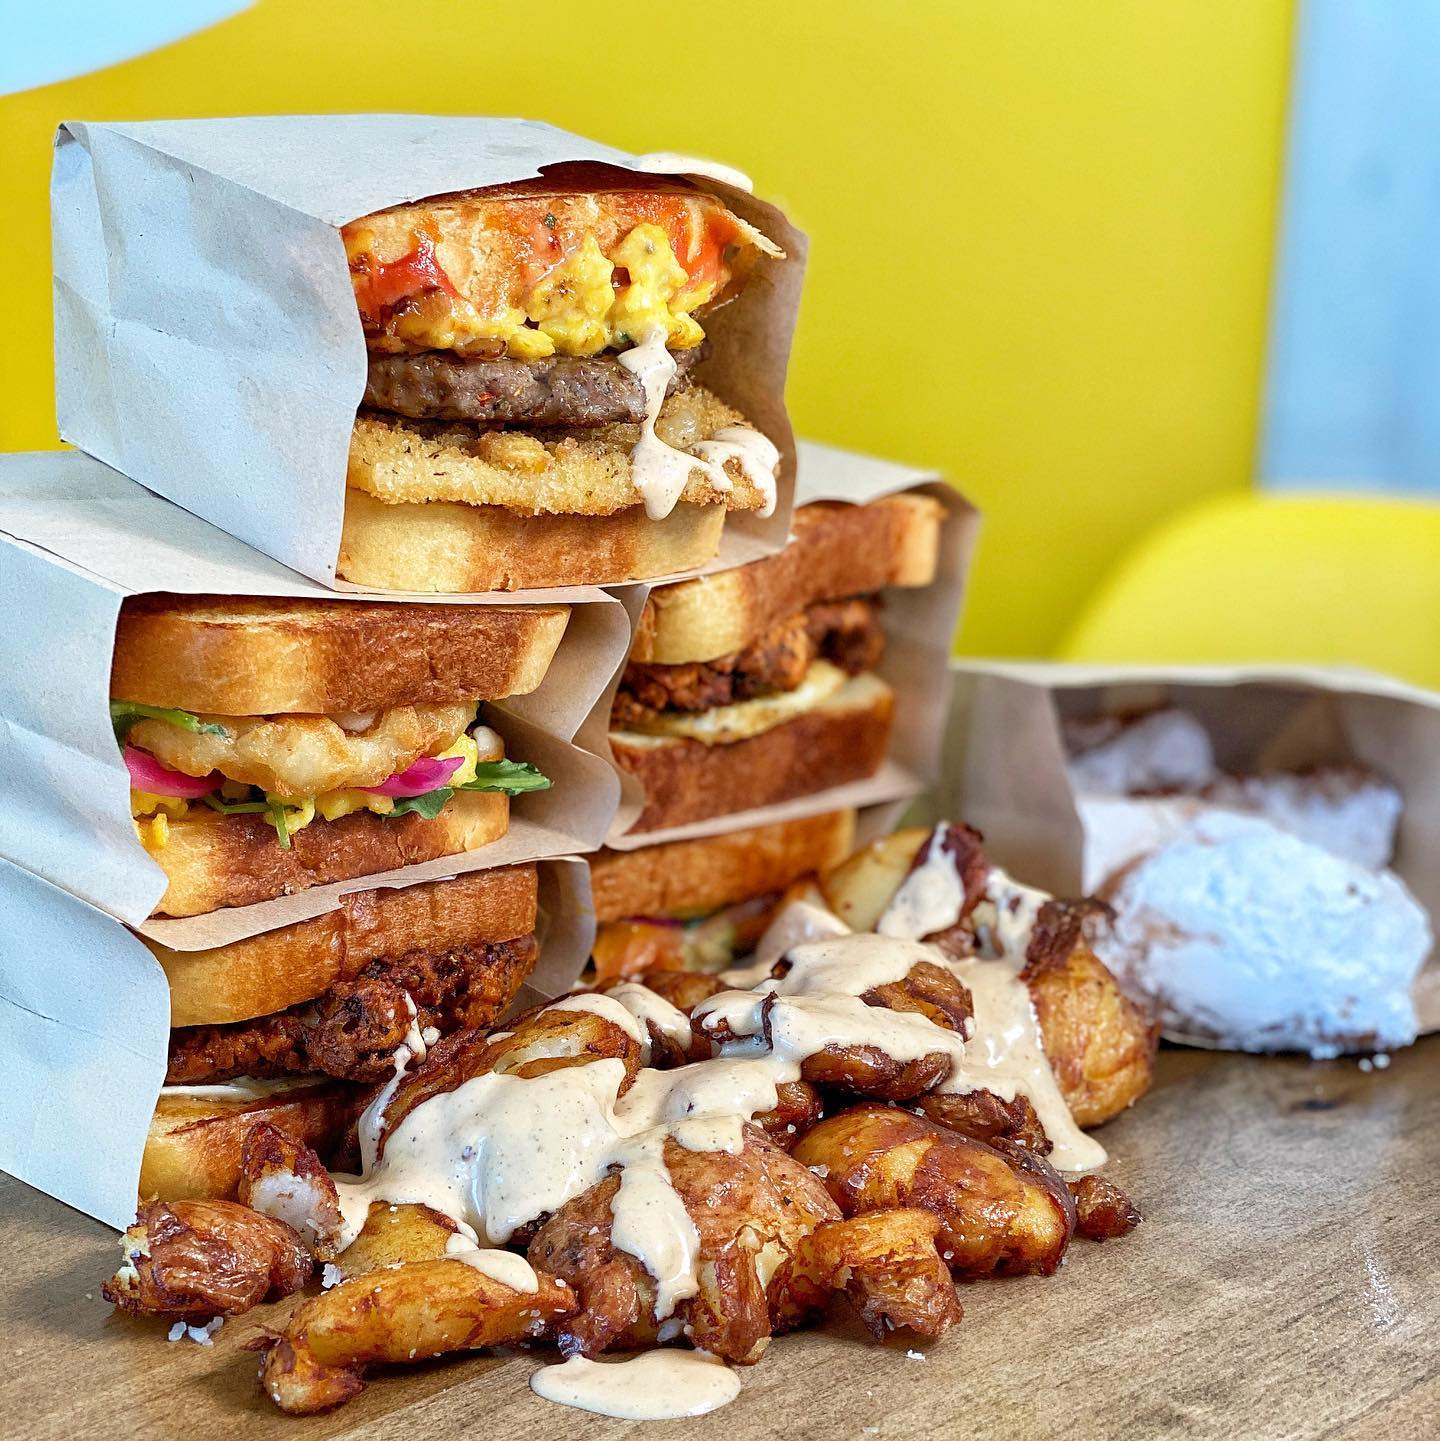 Five breakfast sandwiches stacked